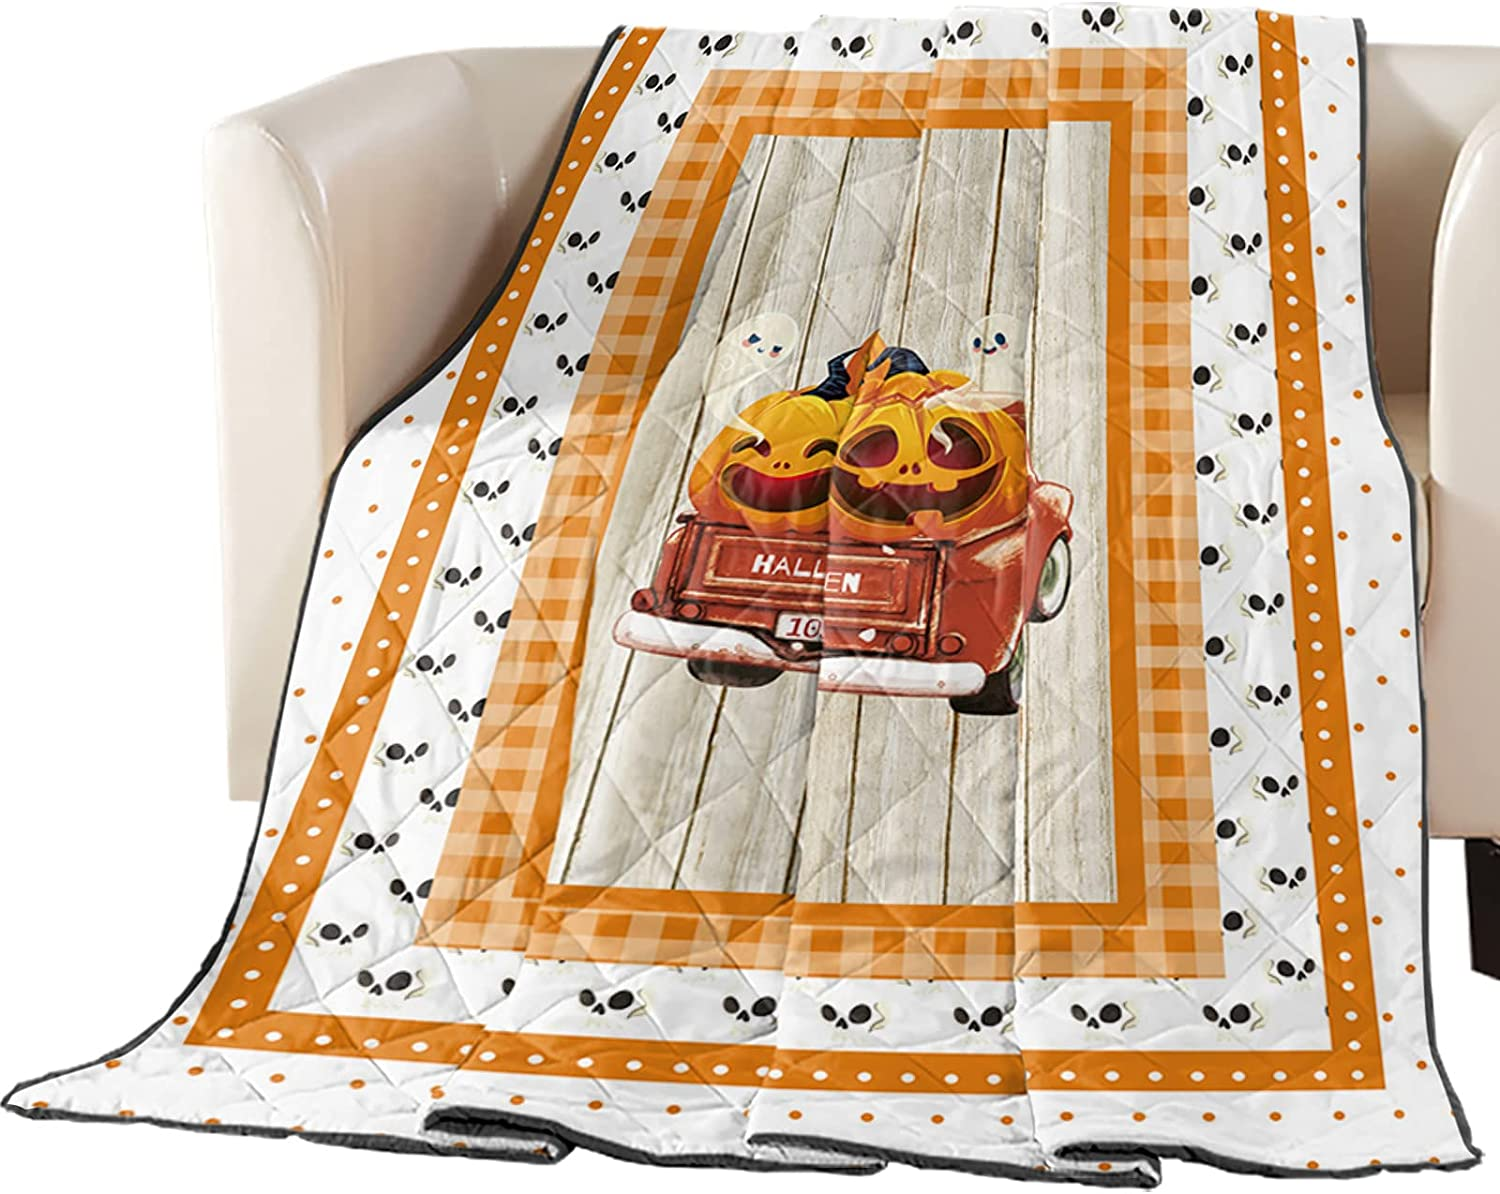 Seasonal Wrap Introduction Premium Coverlet Diamond Stitched unisex Quilted Halloween Truc 64x88in